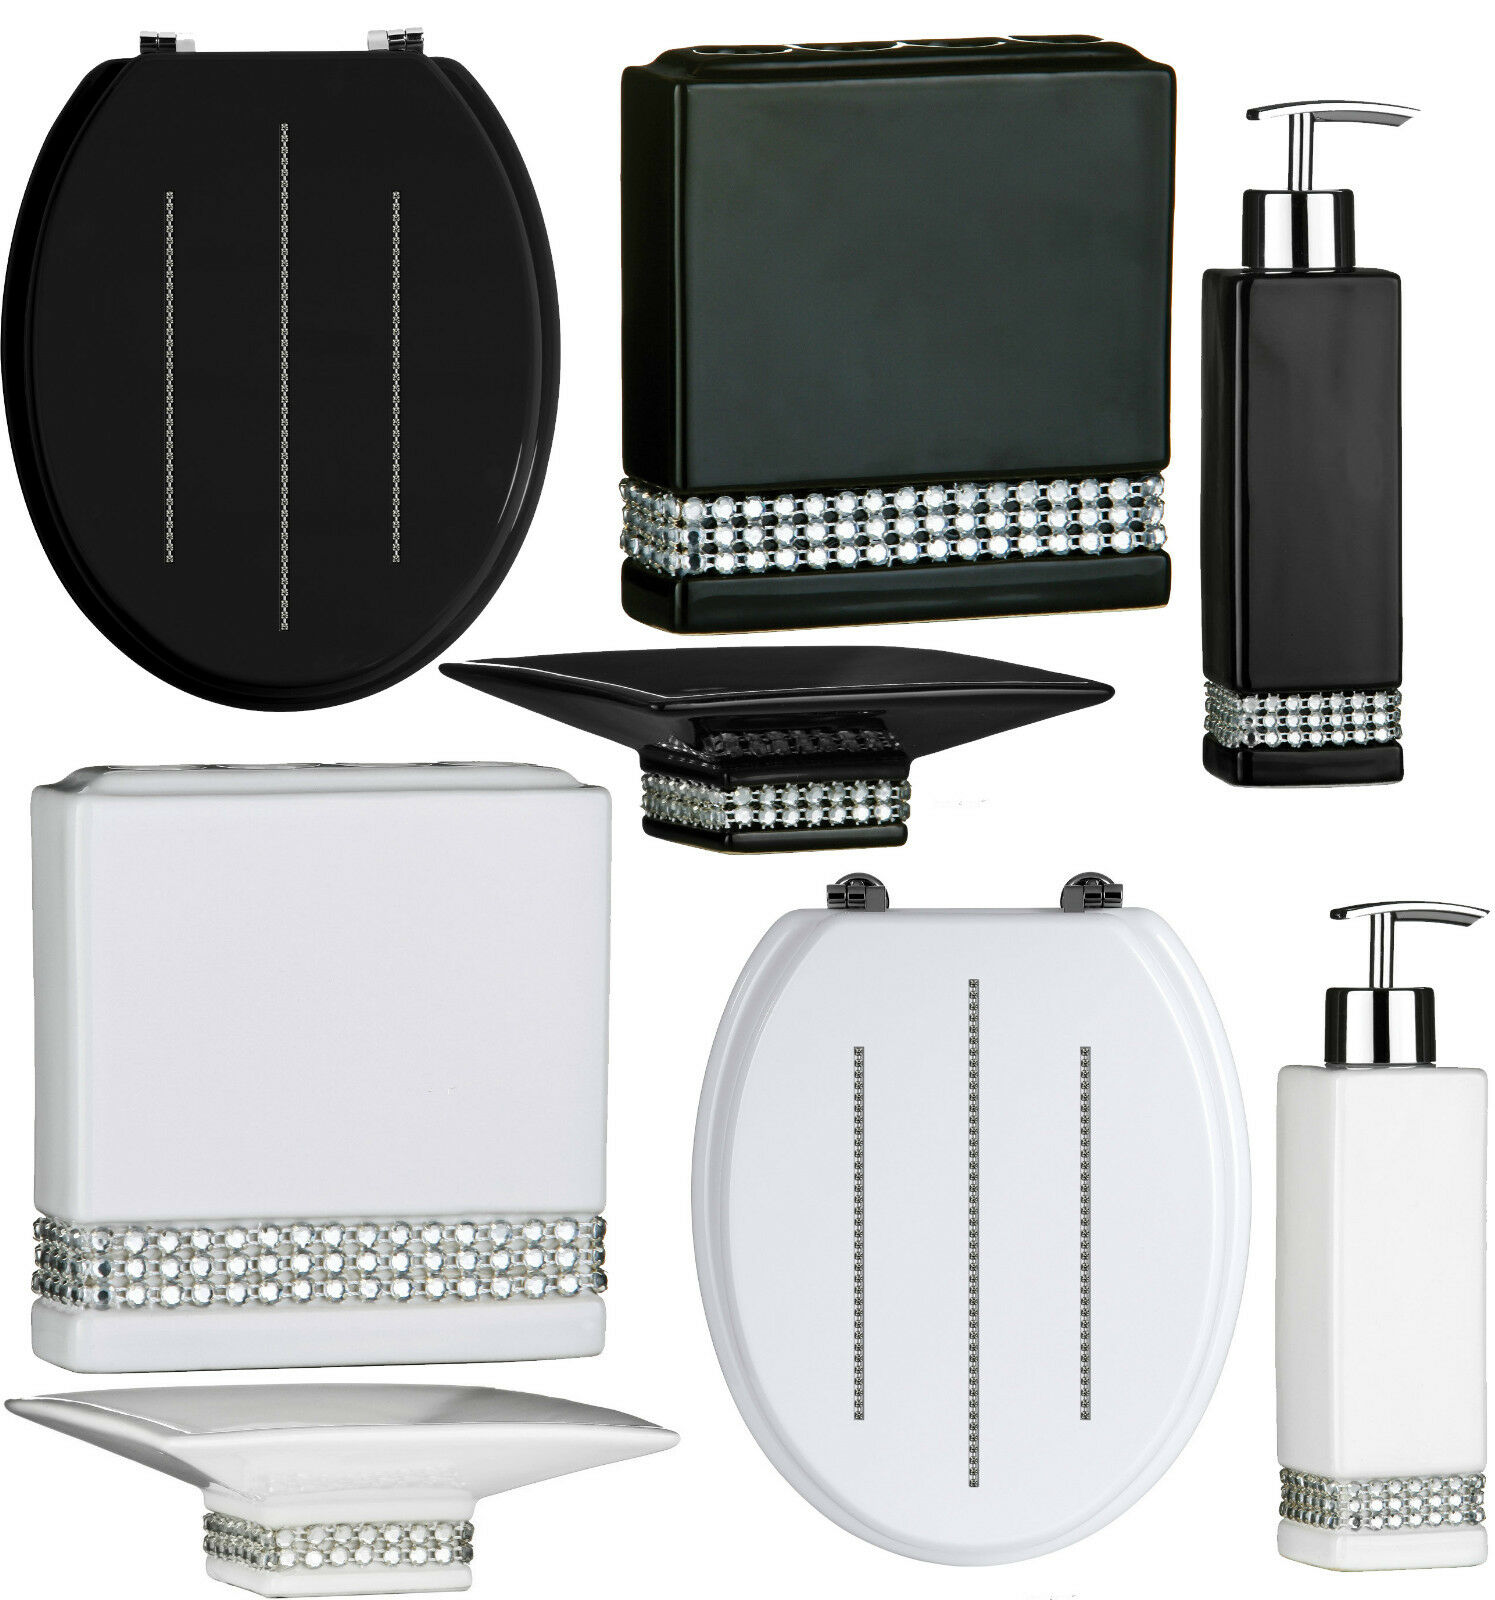 Bathroom Accessories Set Toilet Seat Black And White Radiance